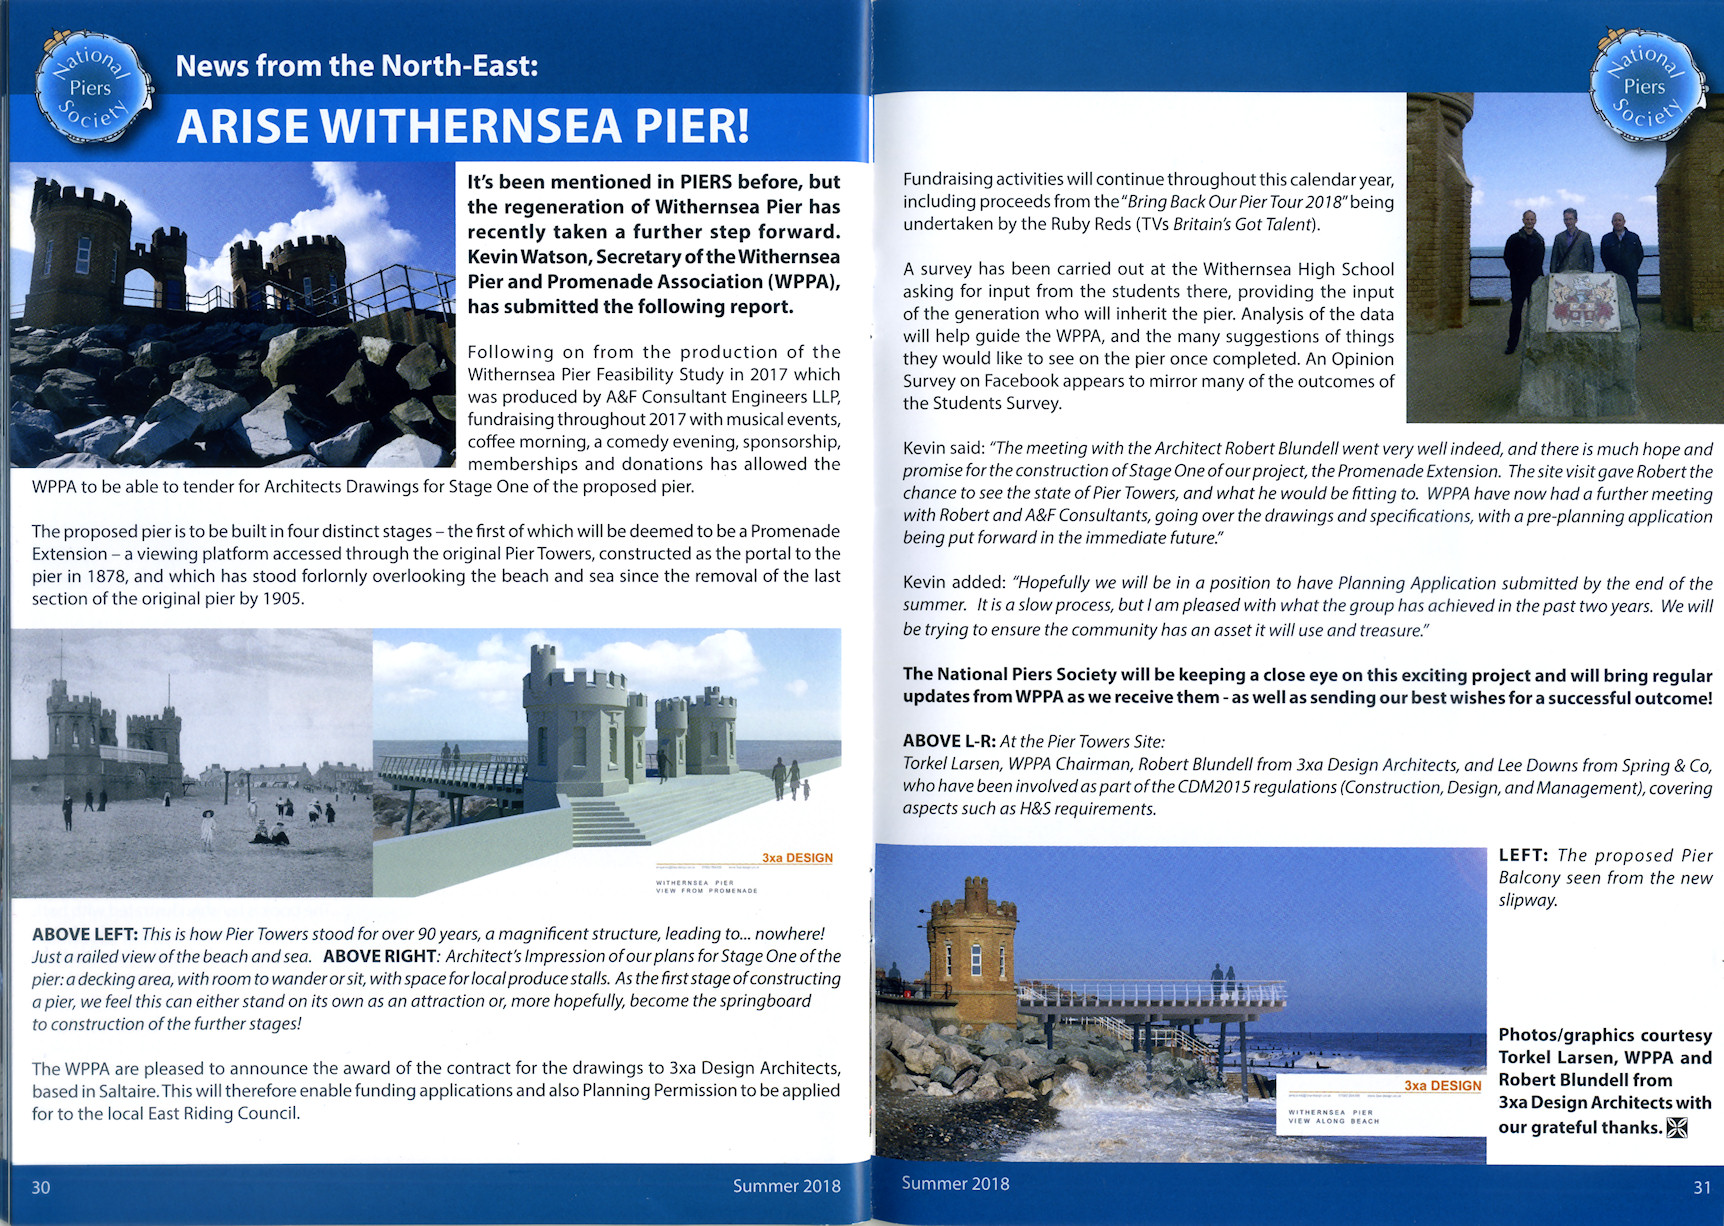 Withersea Pier Press Coverage, National Pier Society